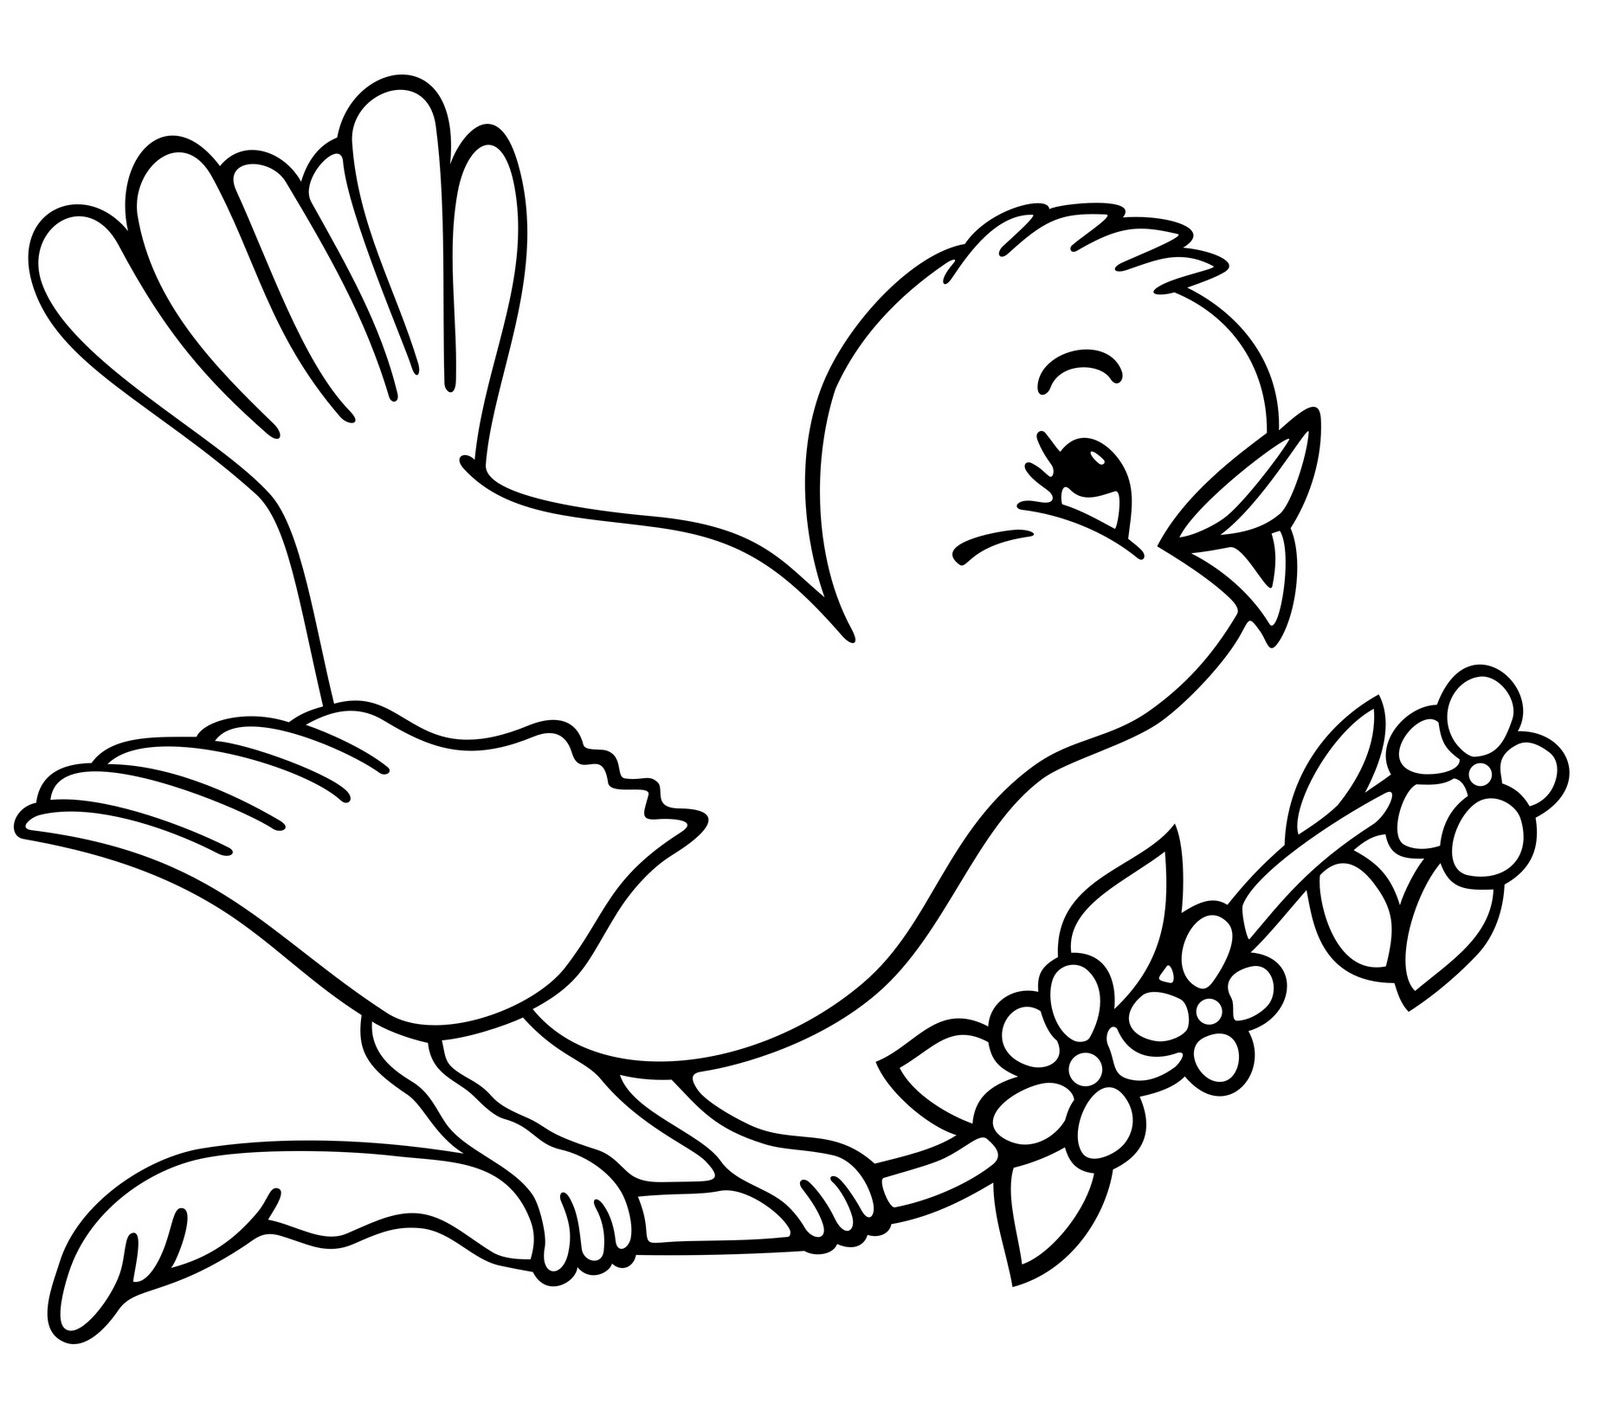 Online coloring pages for children to print - Bird Coloring Pages Free Online Printable Coloring Pages Sheets For Kids Get The Latest Free Bird Coloring Pages Images Favorite Coloring Pages To Print